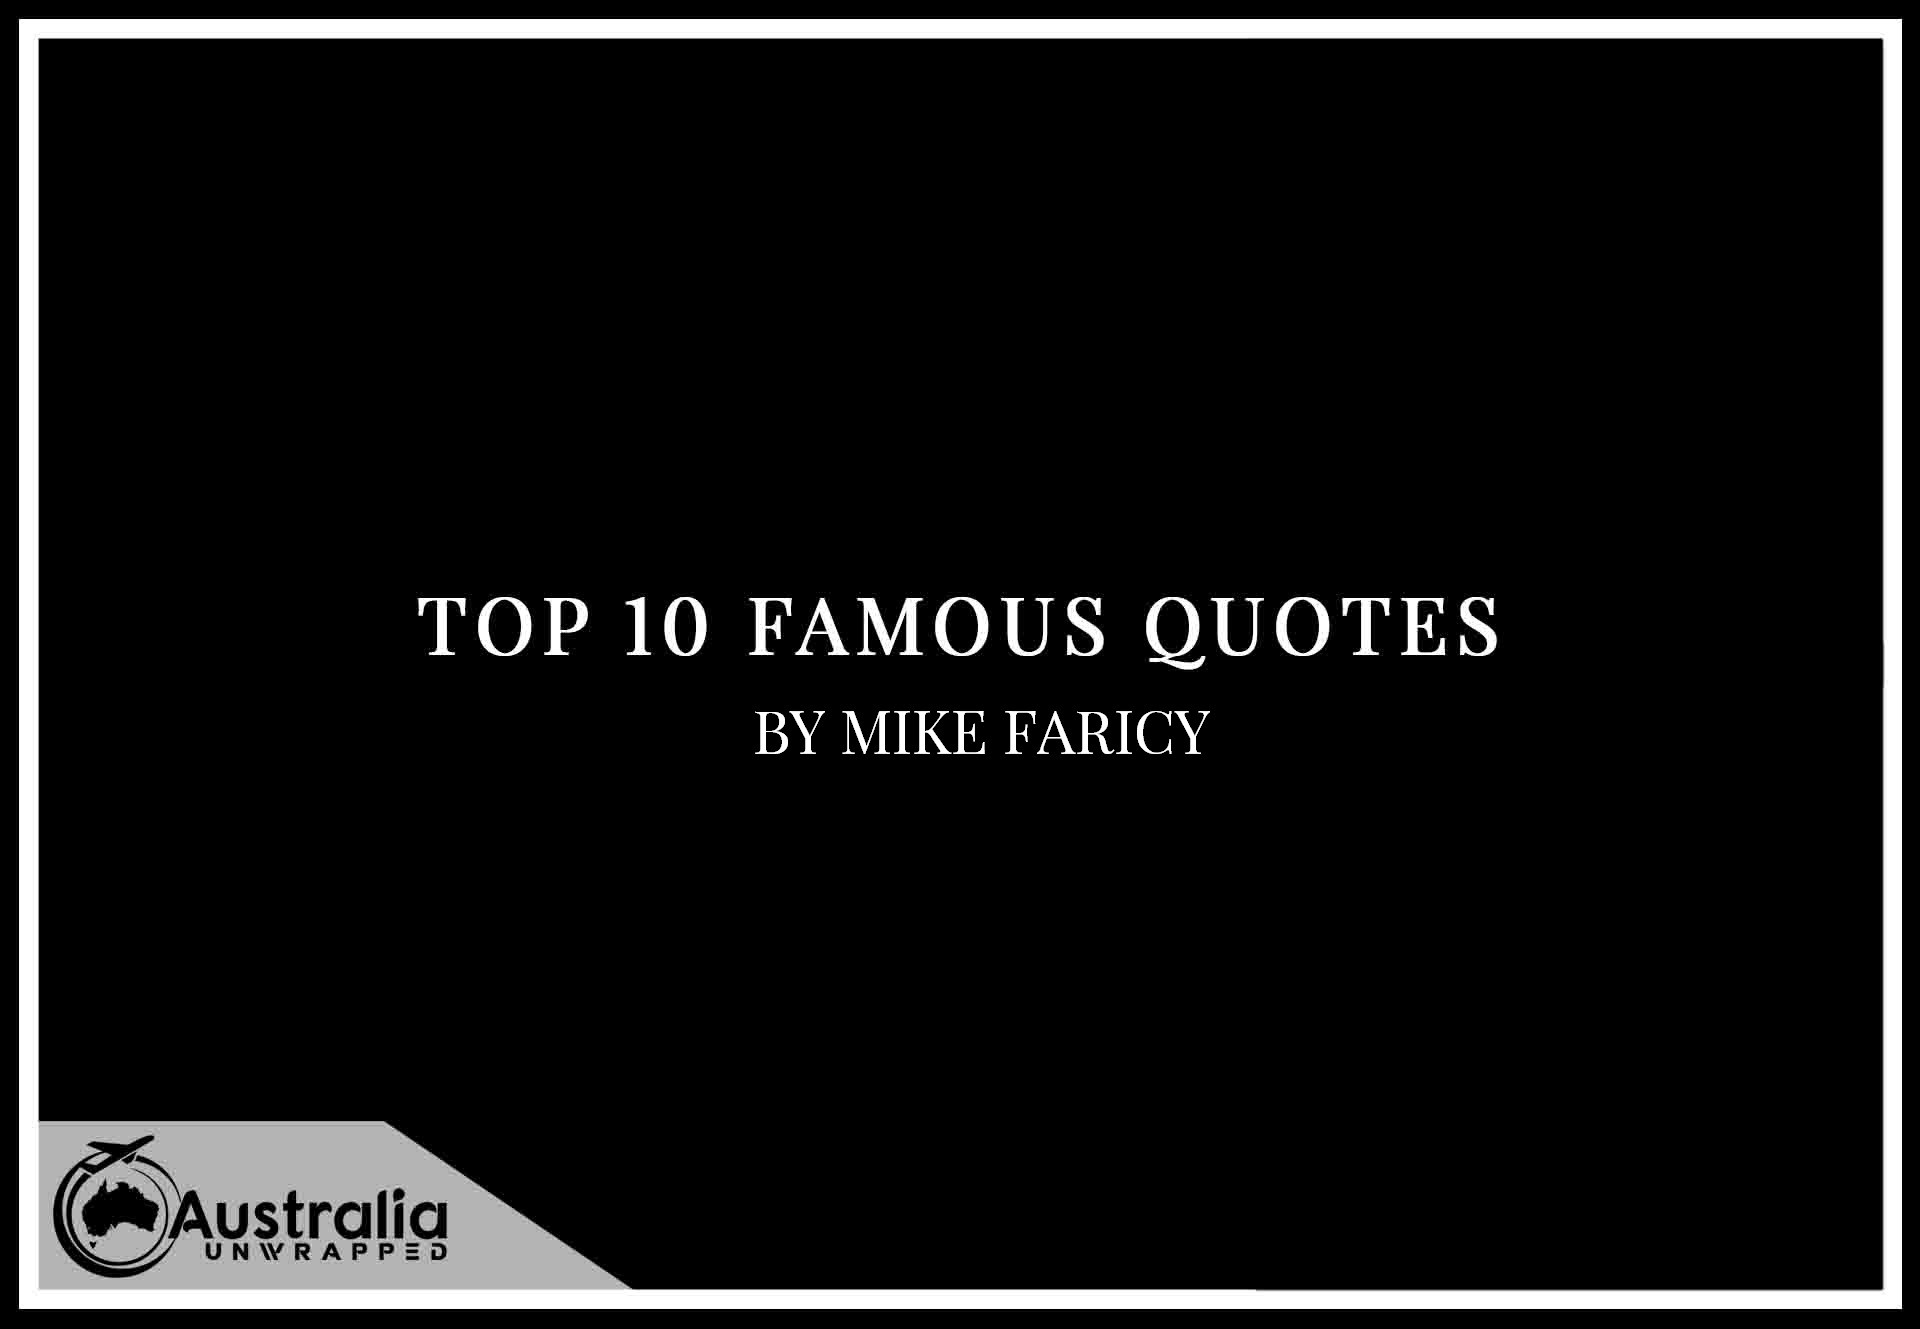 Top 10 Famous Quotes by Author Mike Faricy